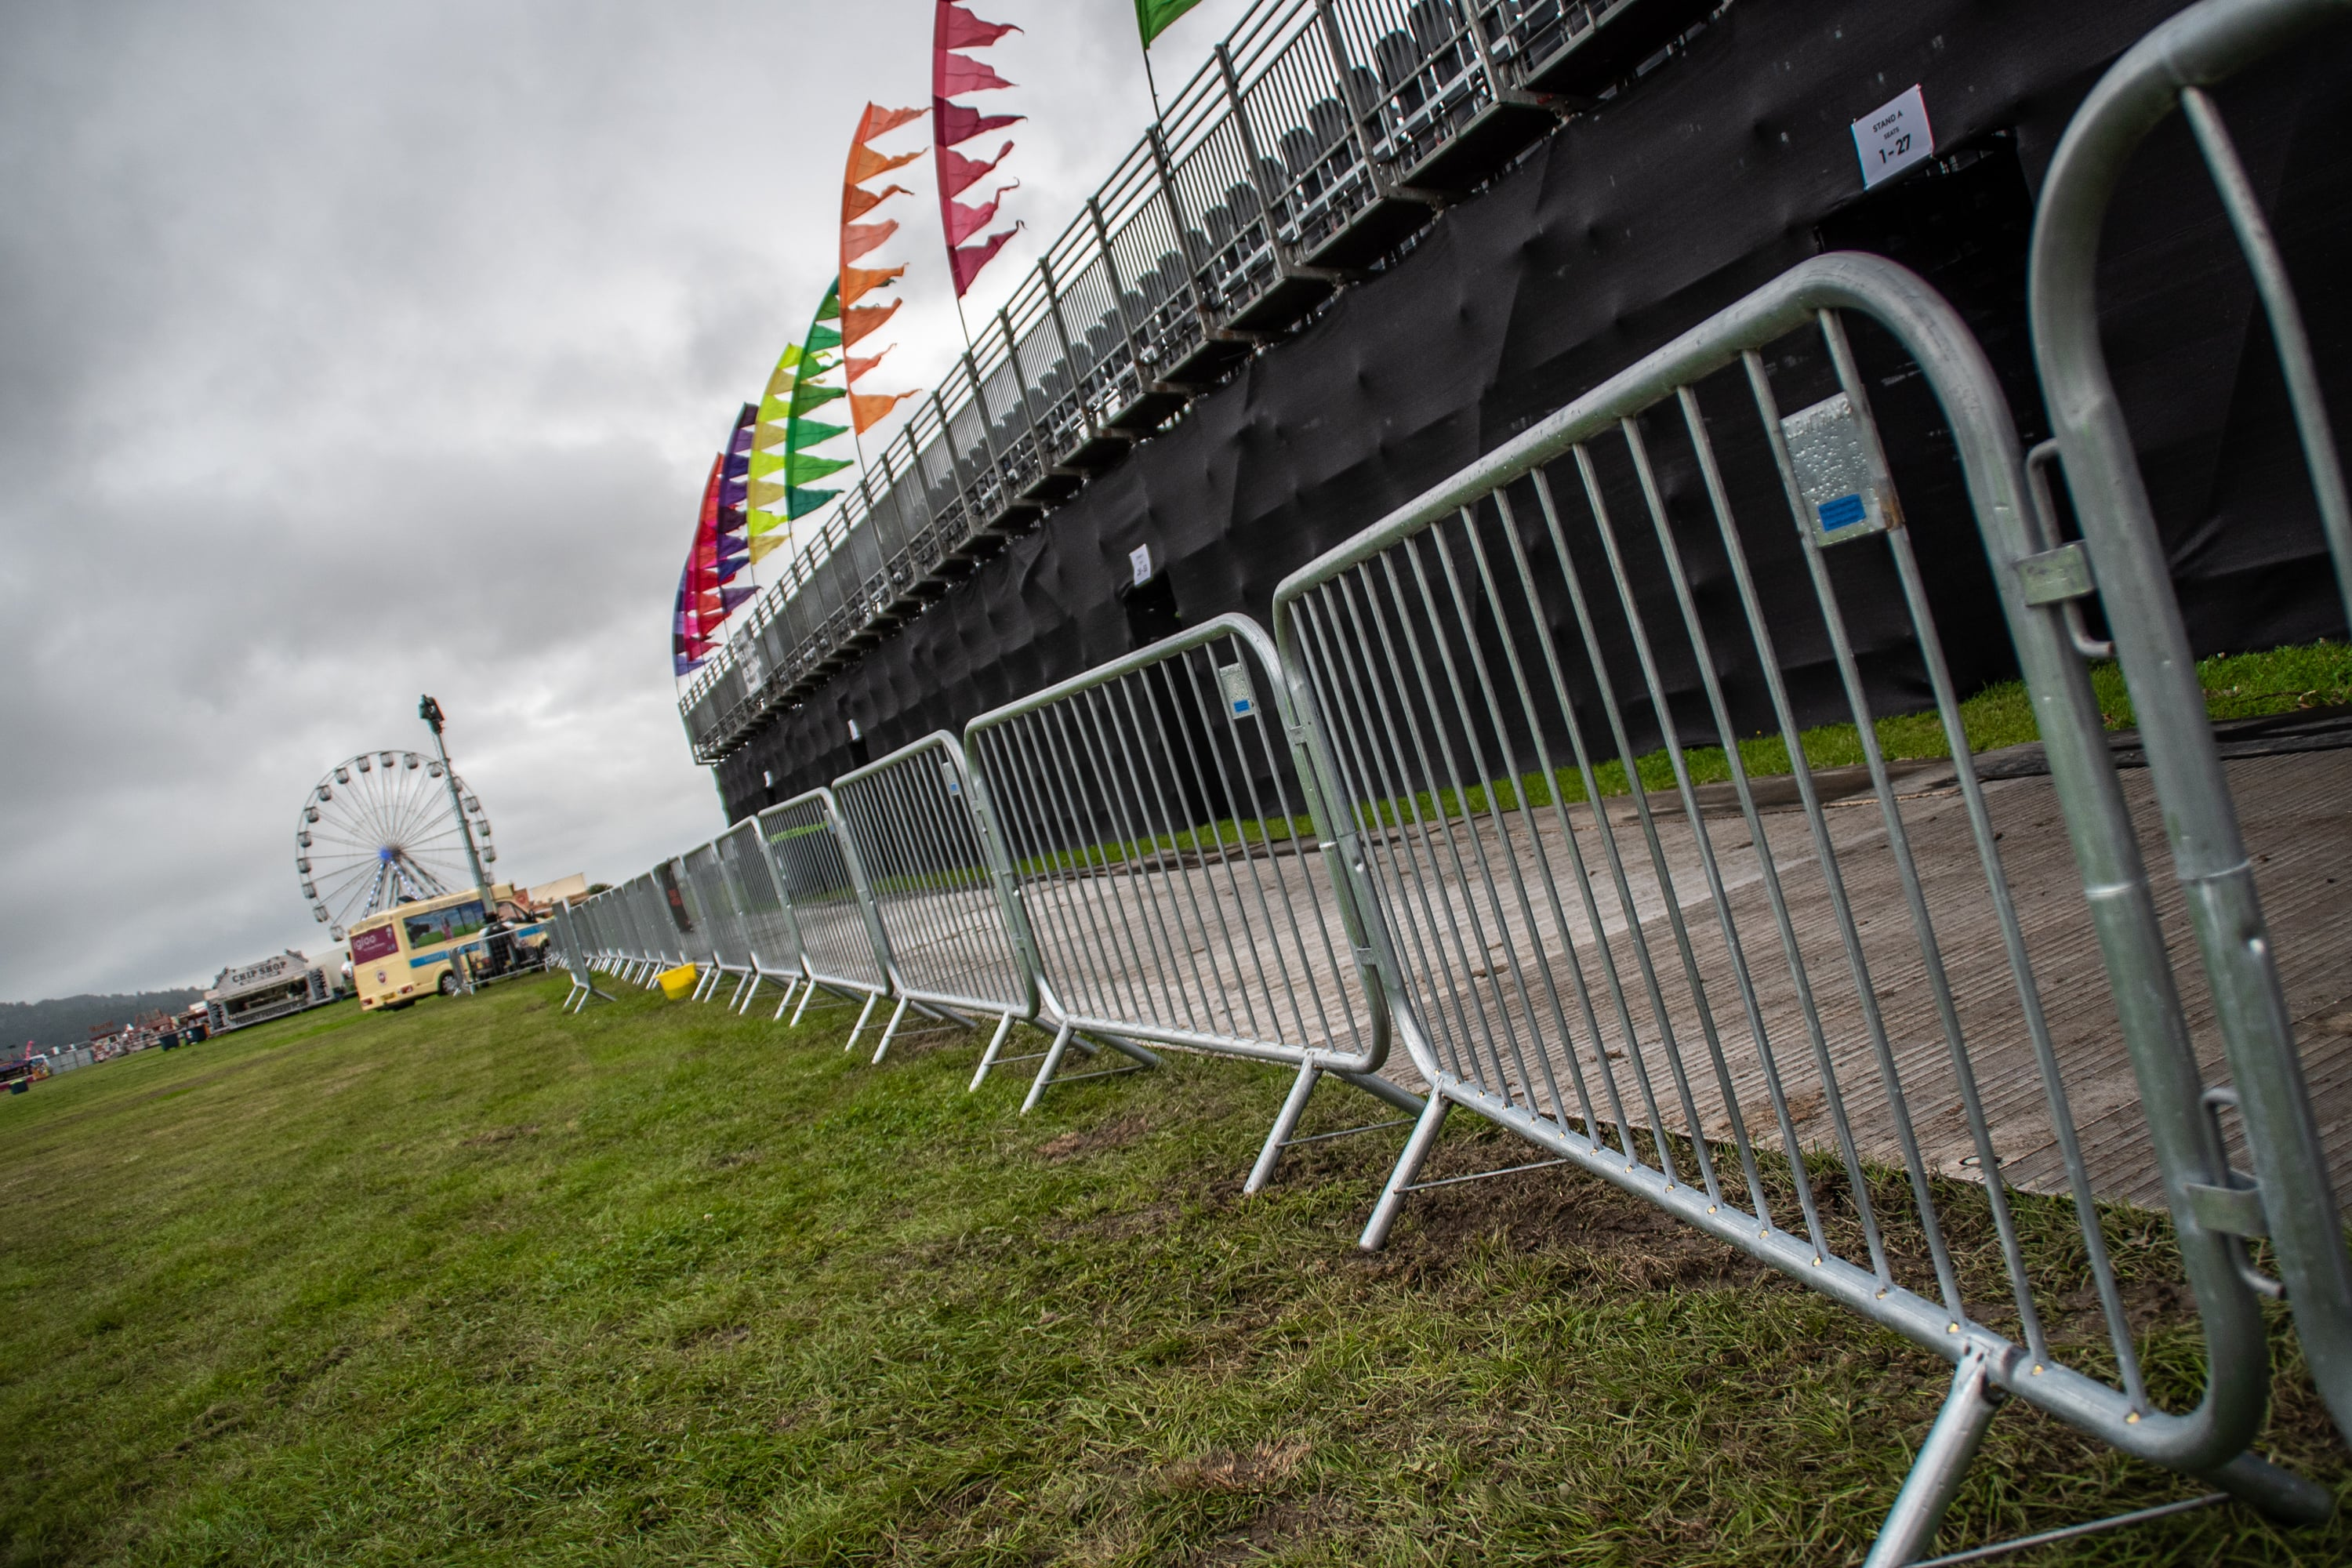 Crowd Control Barriers / Pedestrian Barriers